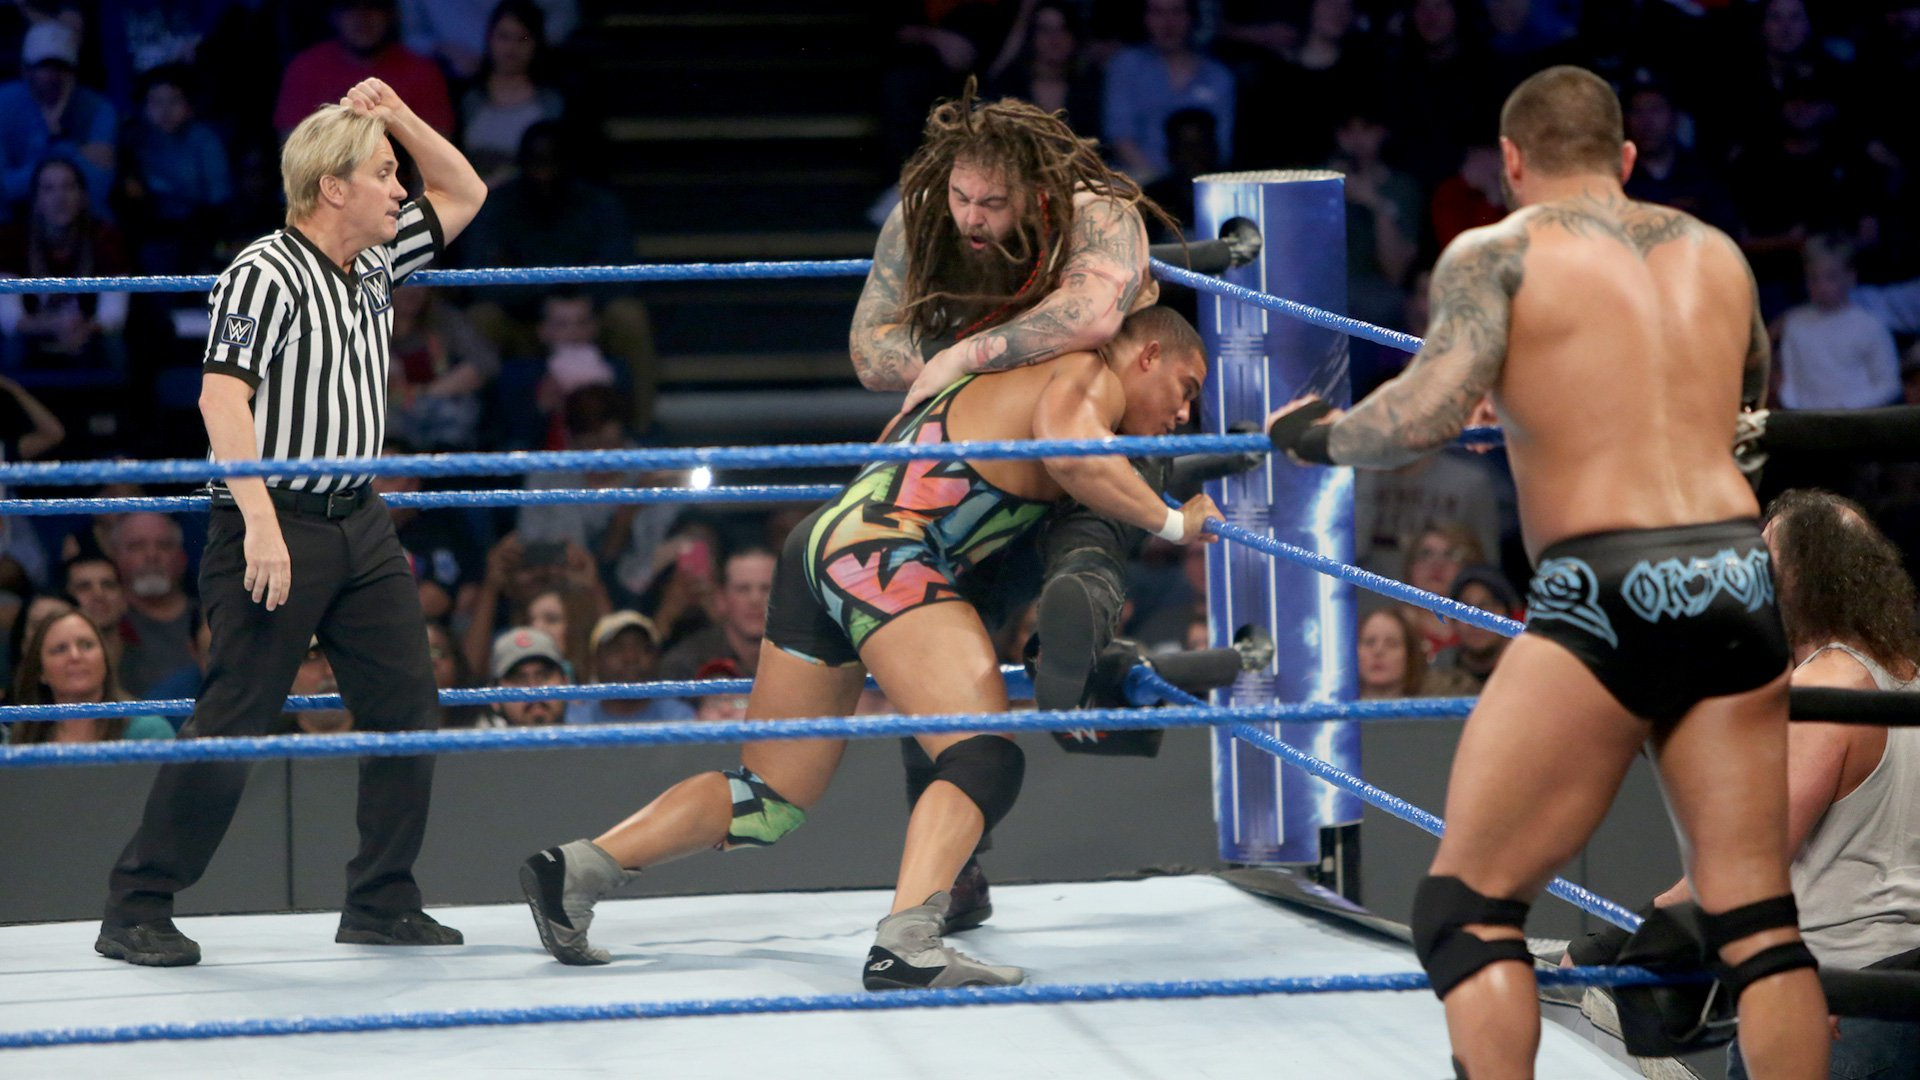 American Alpha put the SmackDown Tag Team Championship on the line against The Wyatt Family.